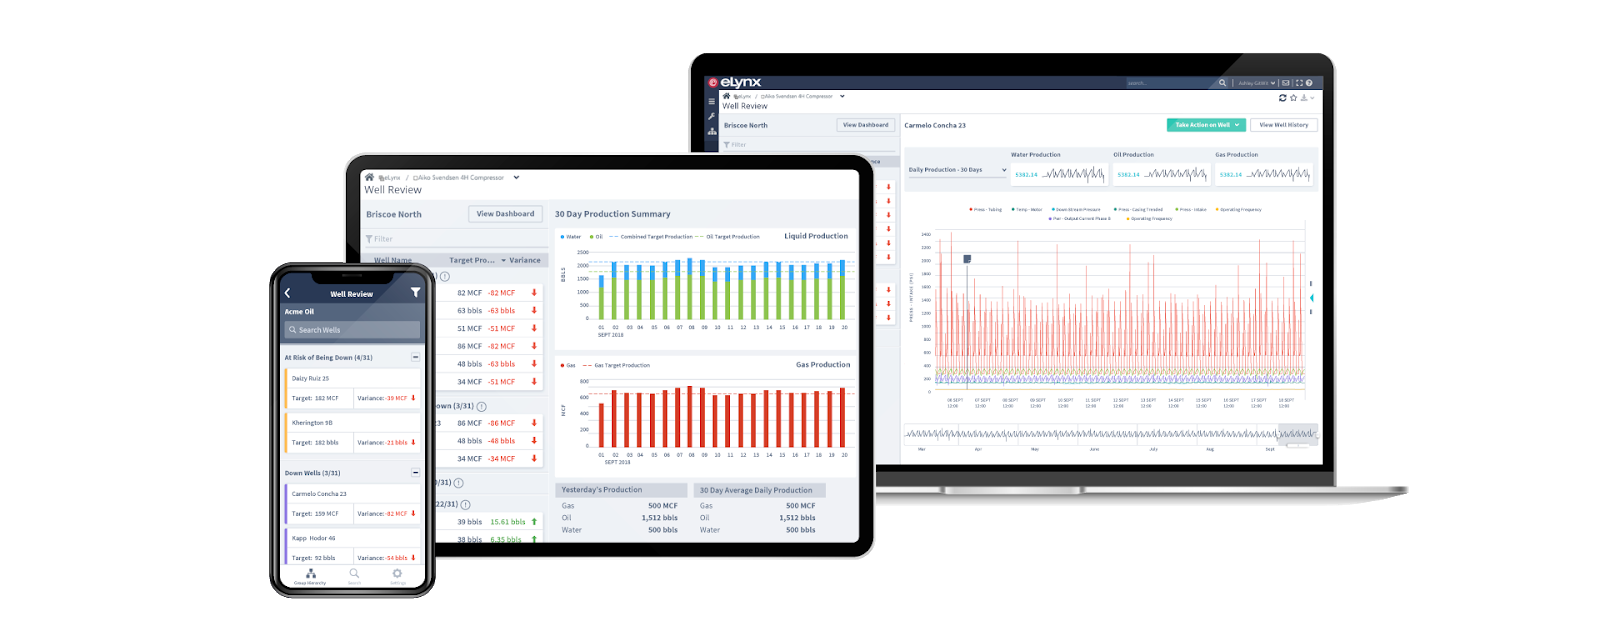 eLynx scada applications available on all devices